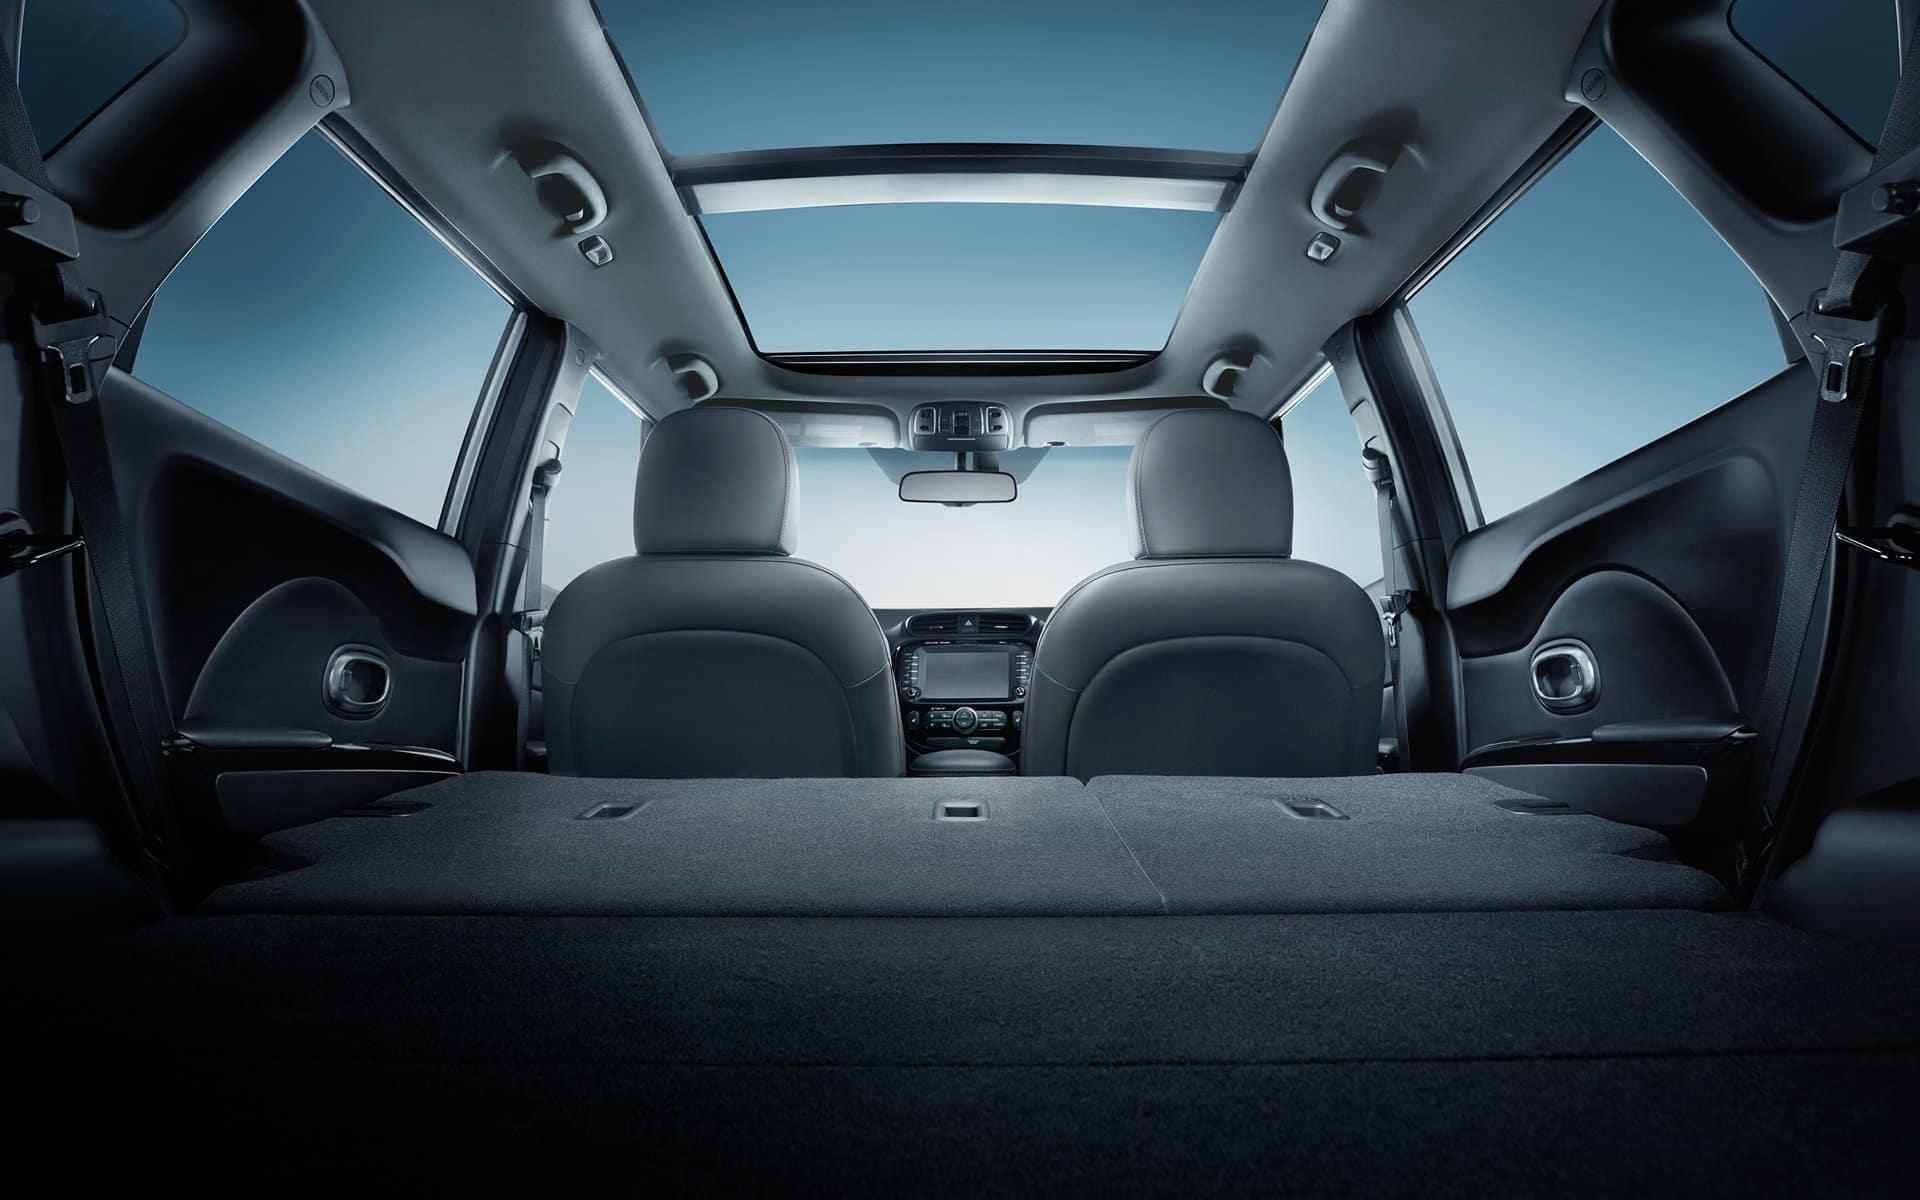 2019 Kia Soul Panoramic Roof